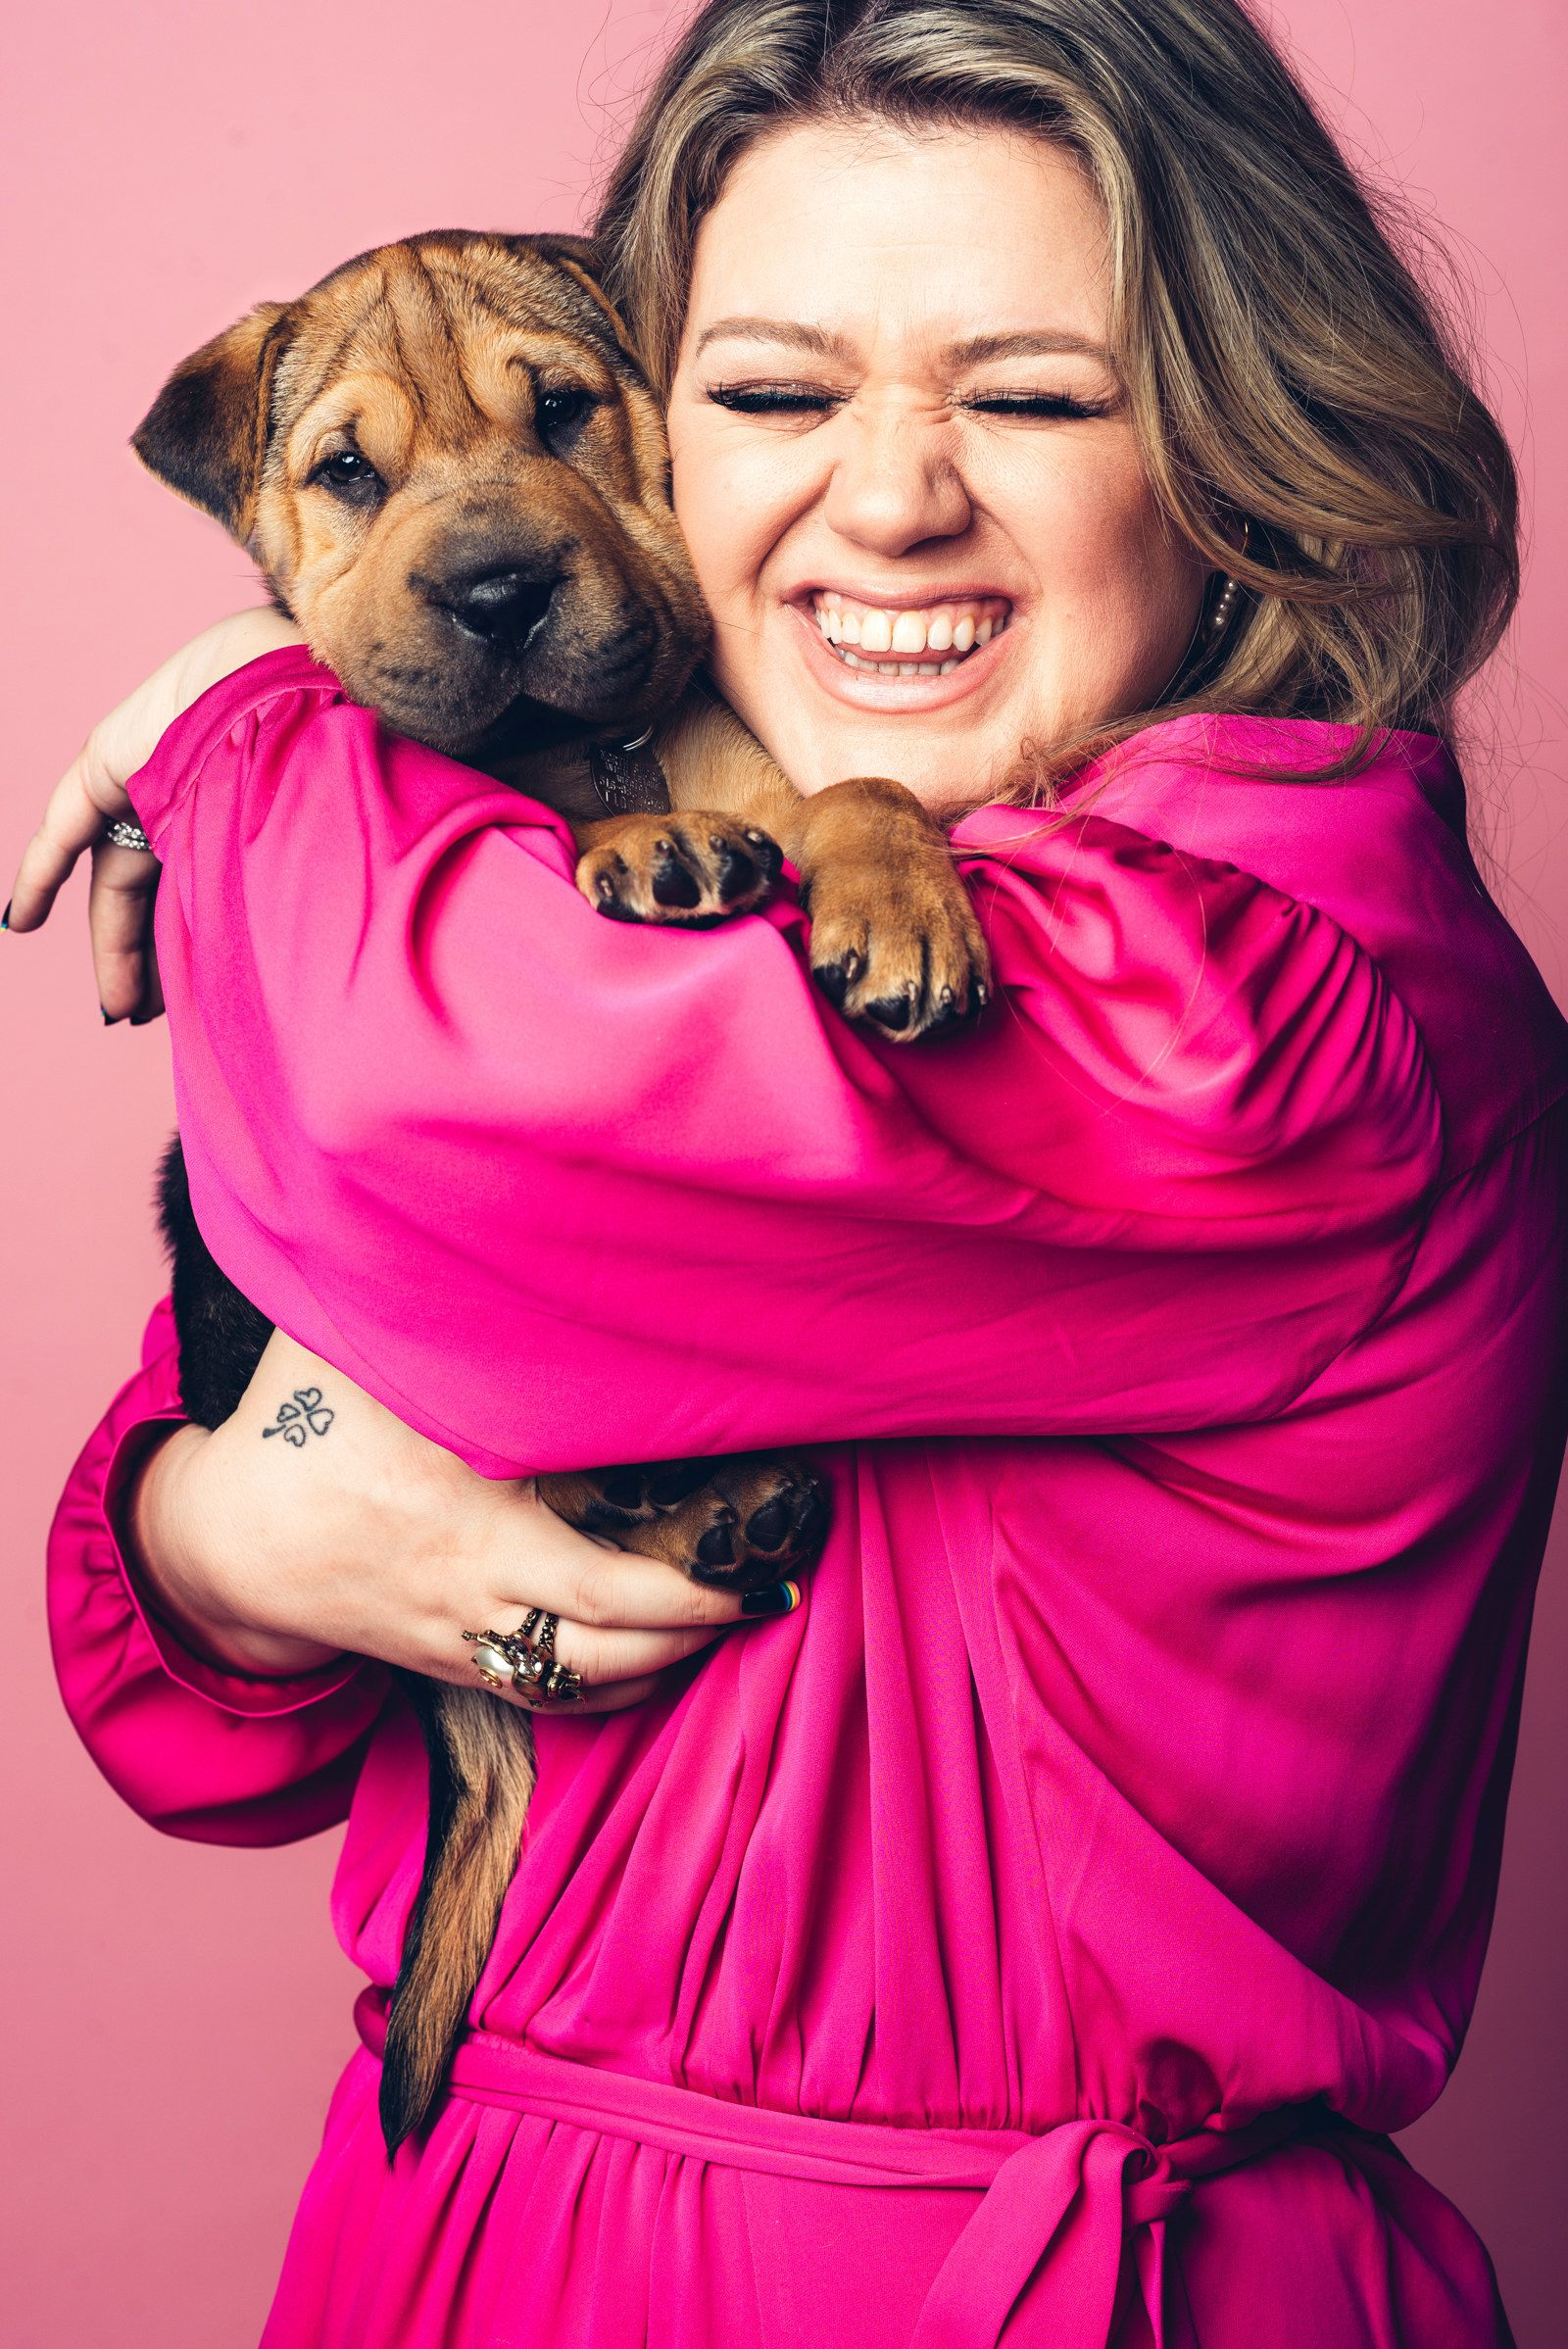 Kelly clarkson gets interviewed while playing with puppies